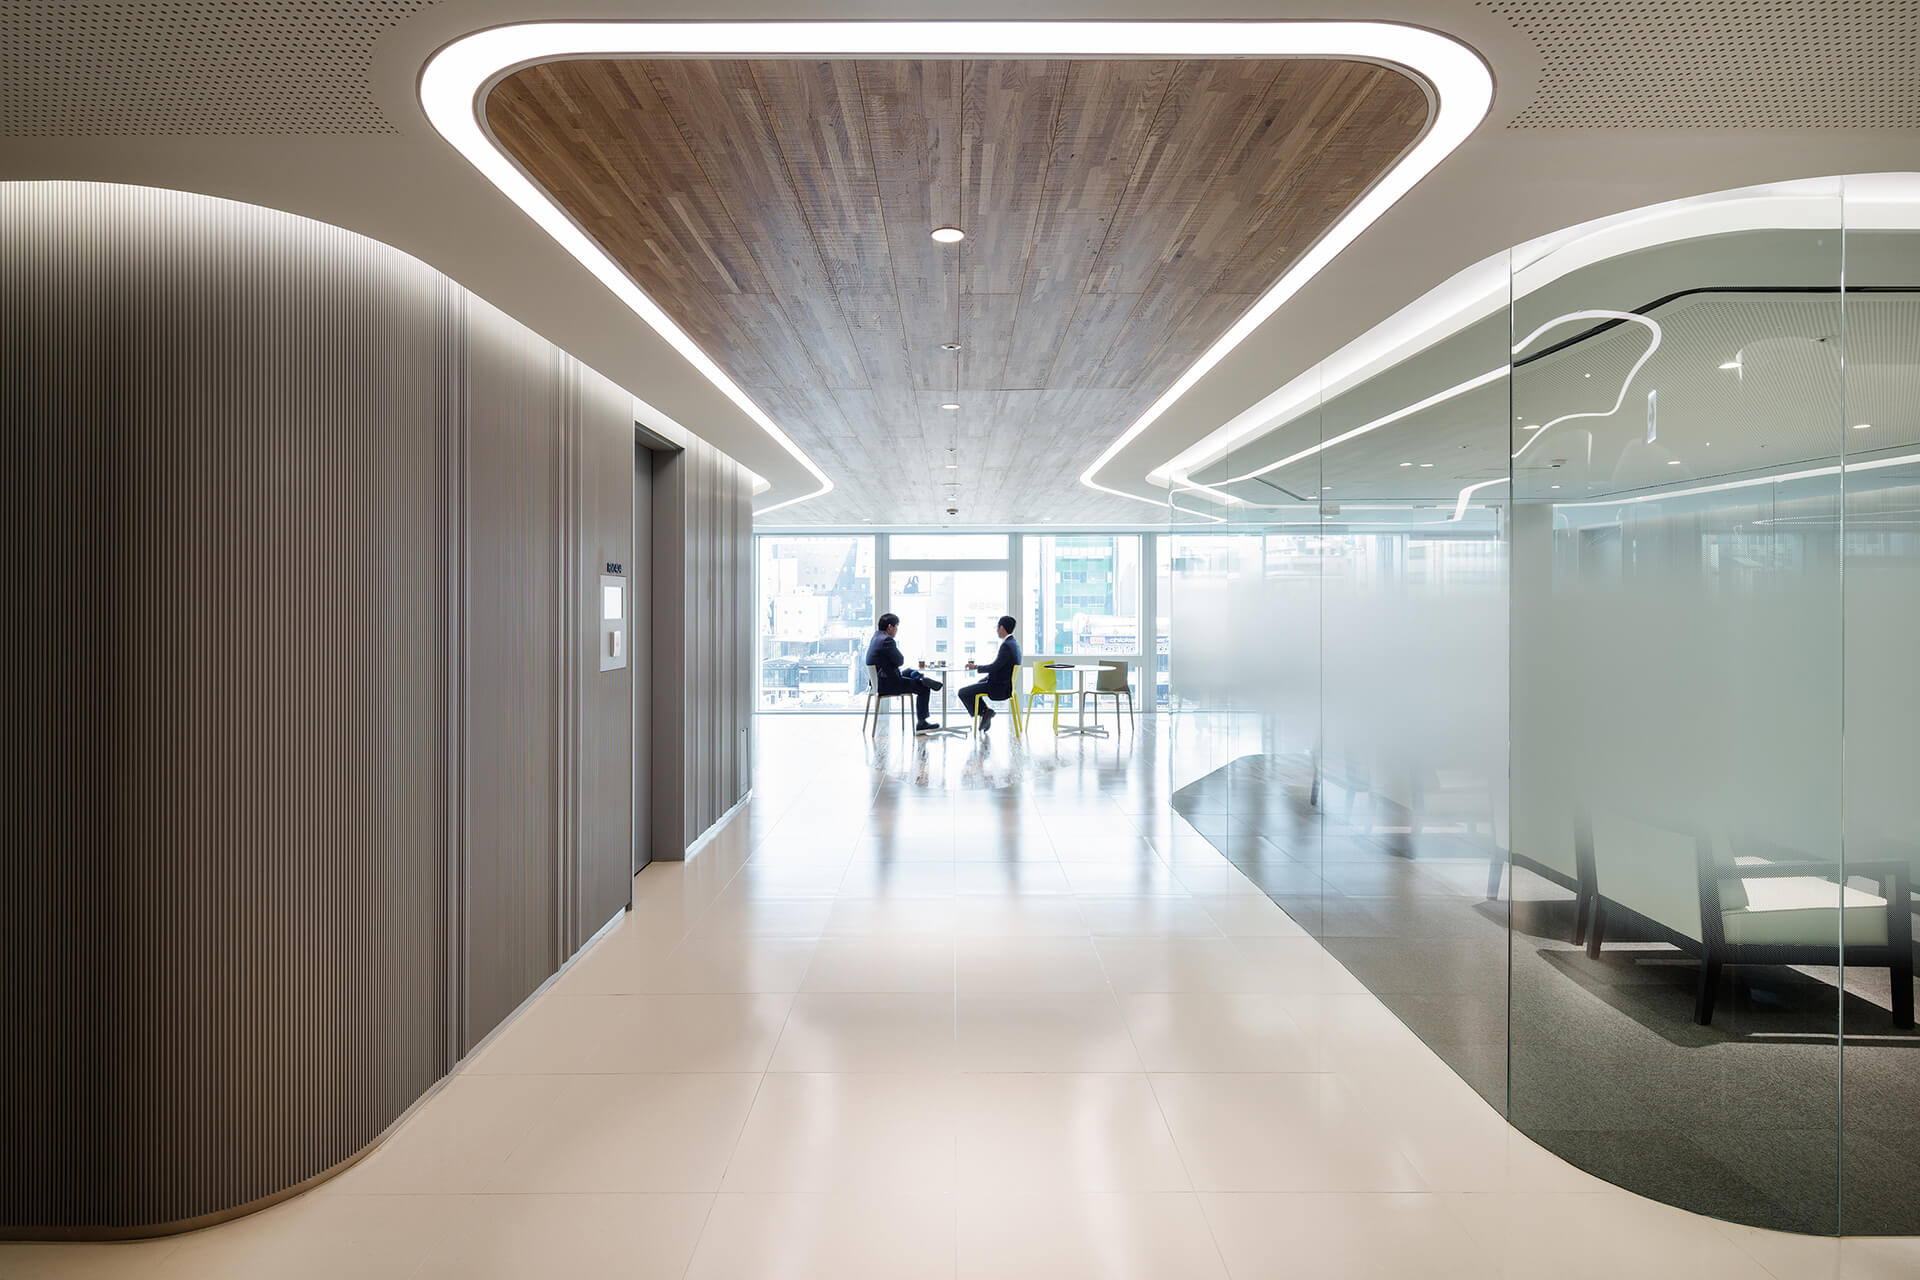 Meeting rooms inside employ glass of varying transparencies to provide privacy as well as clarity | Hanwha Headquarters Remodelling by UNStudio | STIRworld